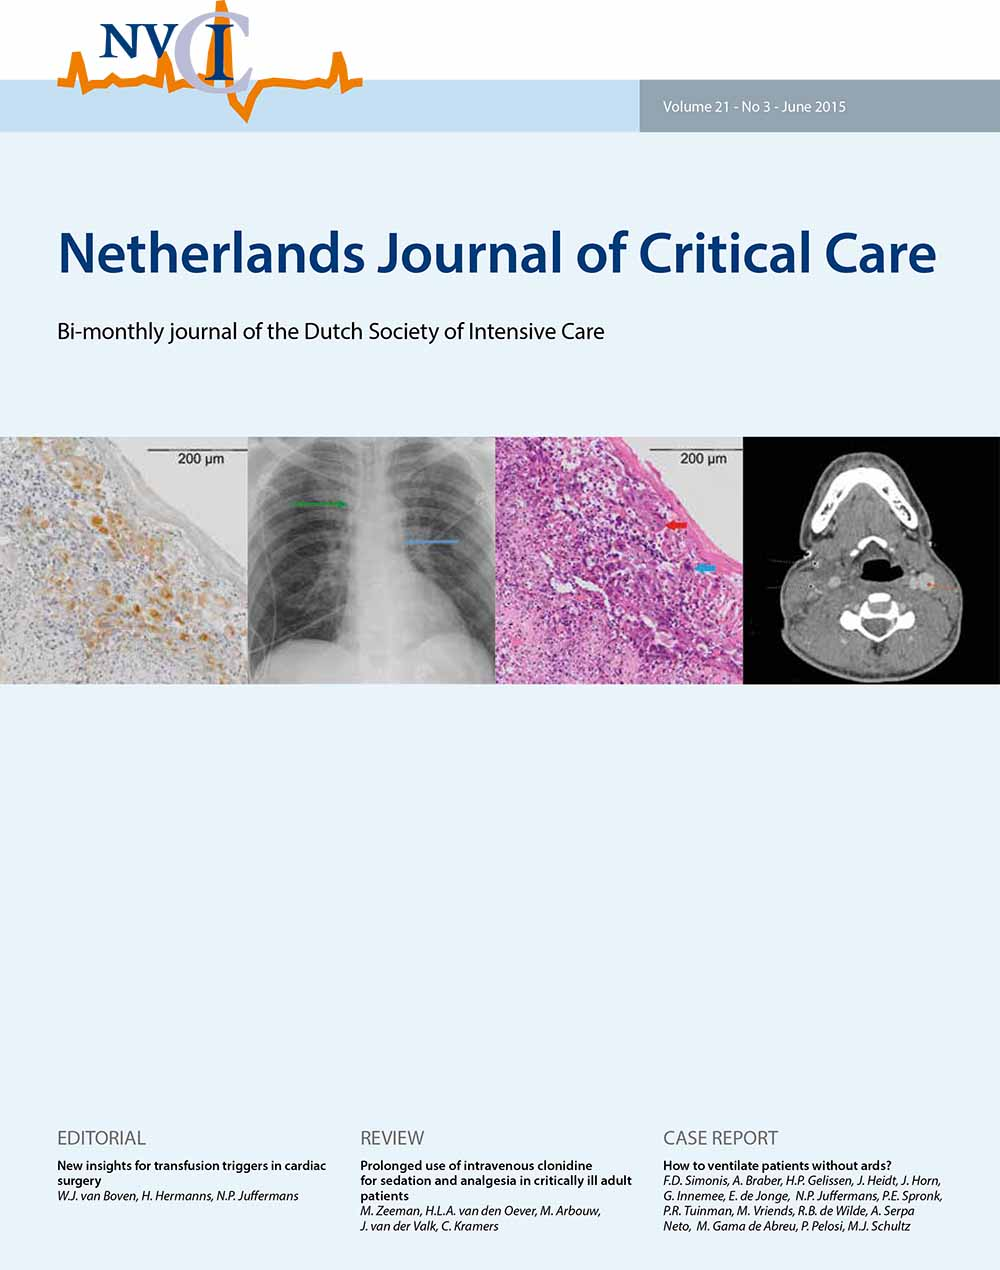 Issues | The Netherlands Journal of Critical Care (NJCC)